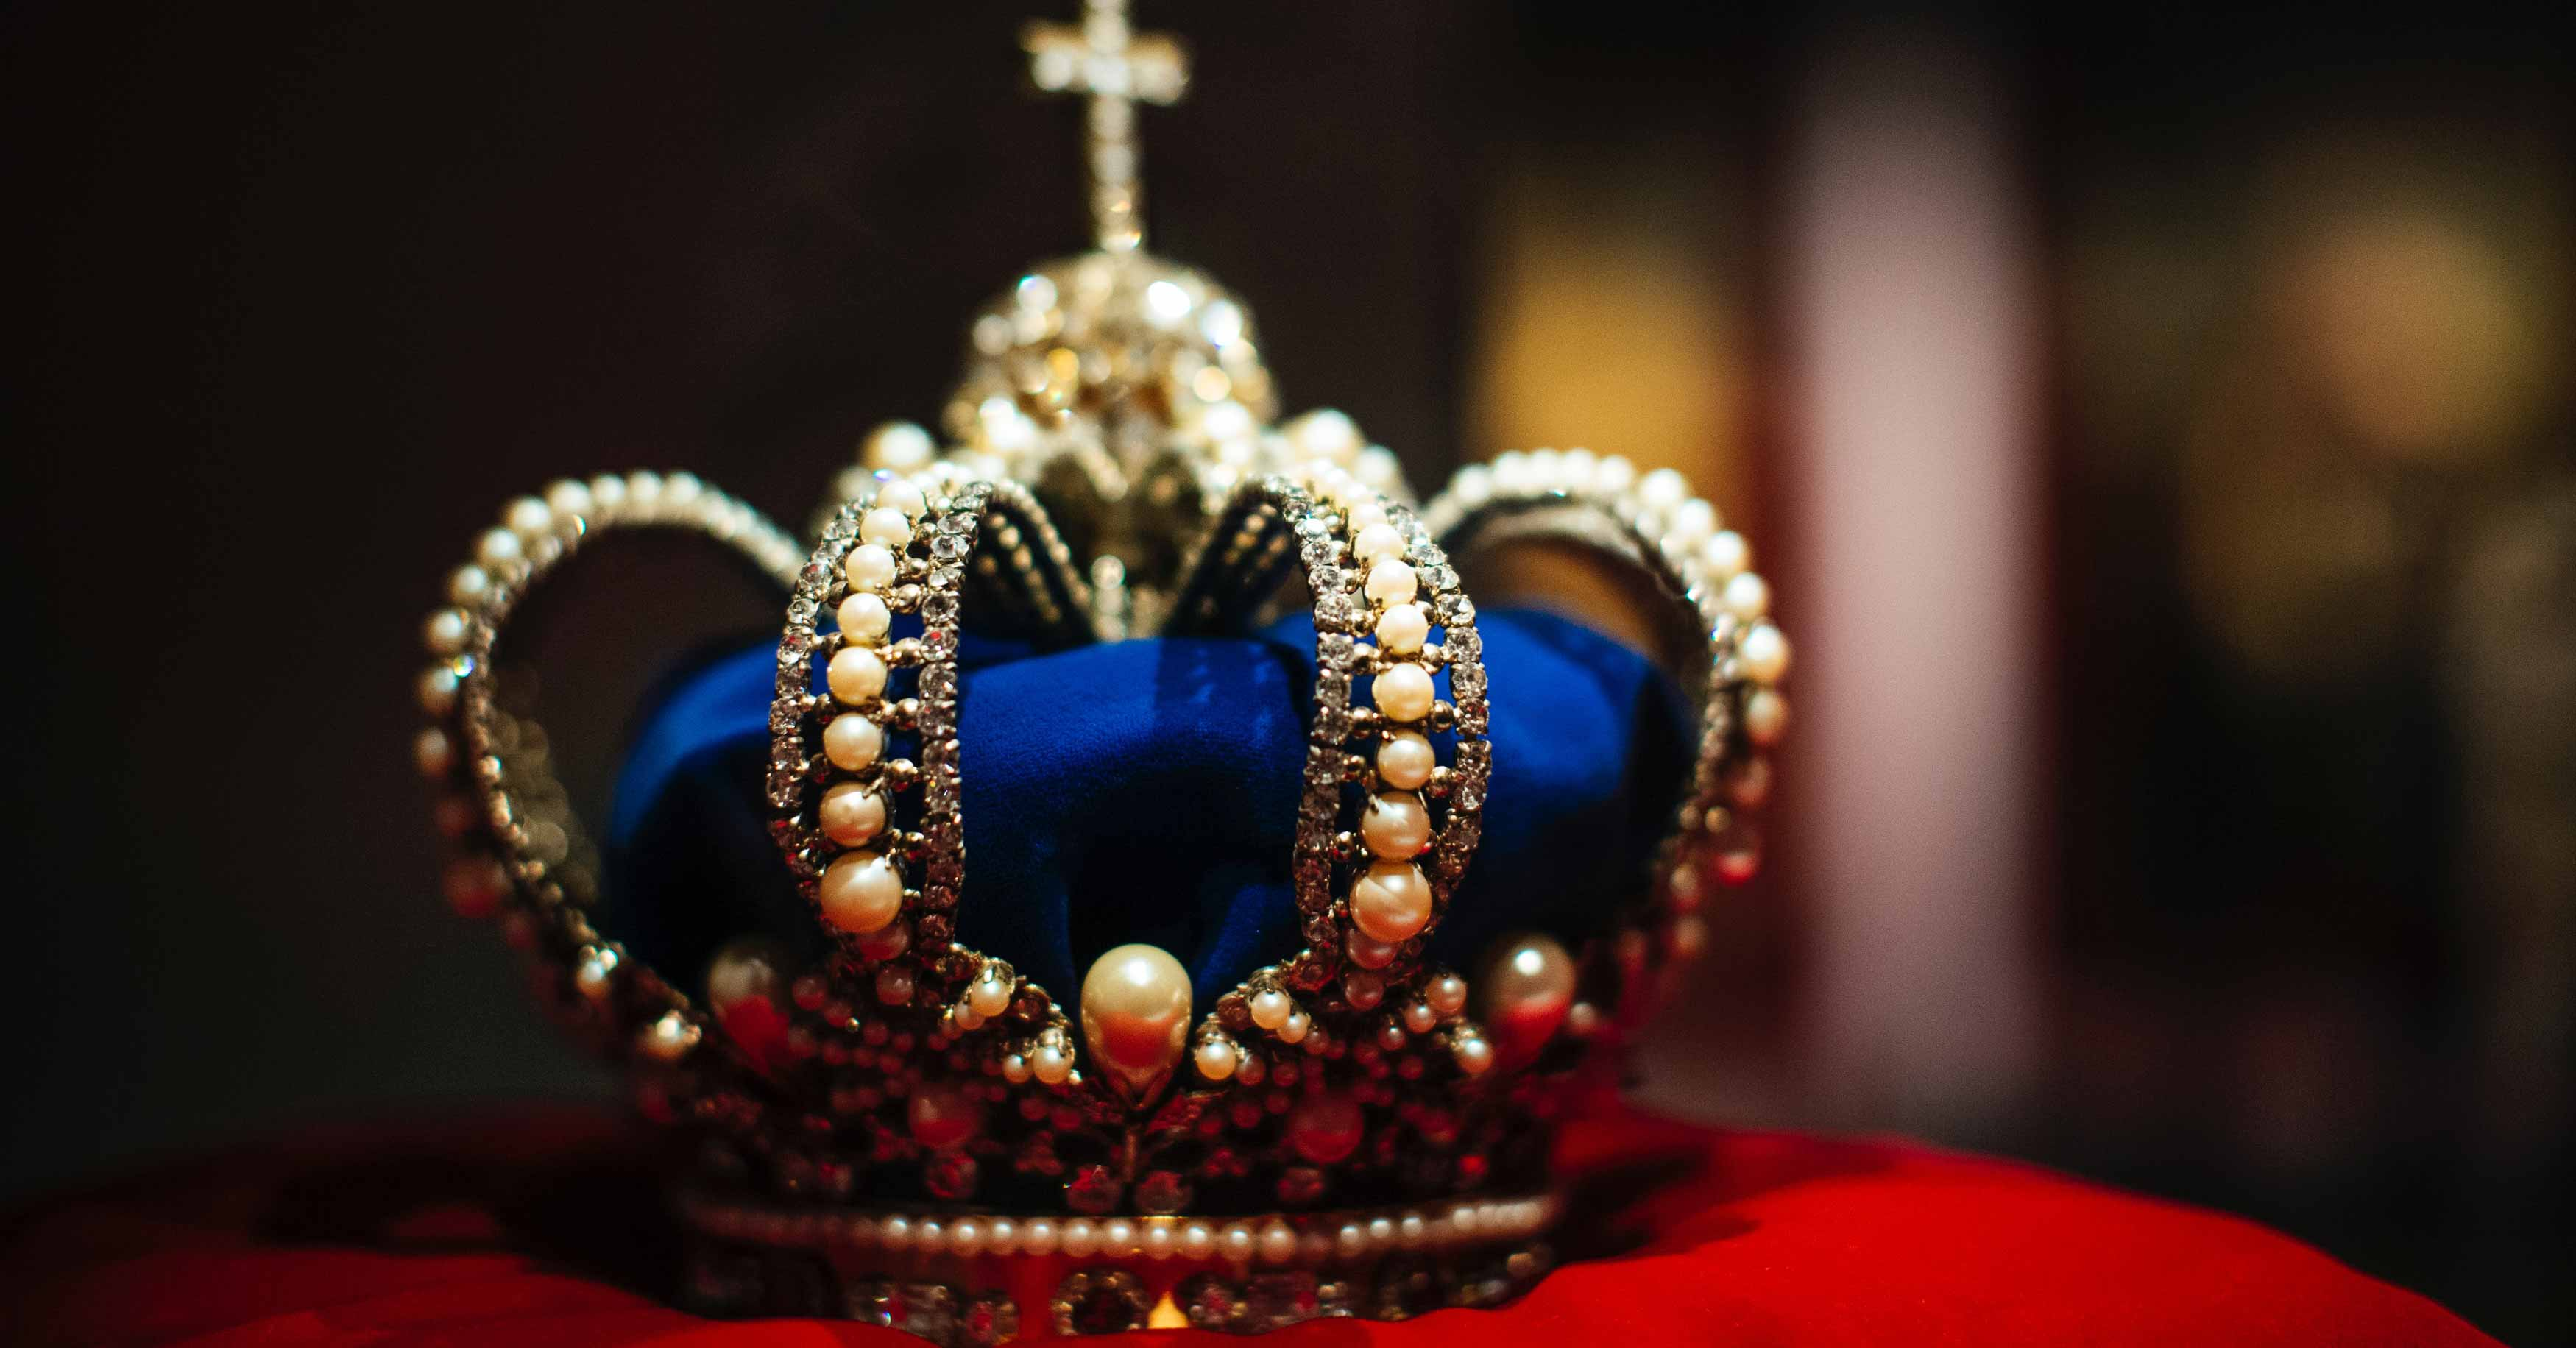 Crown on red cushion